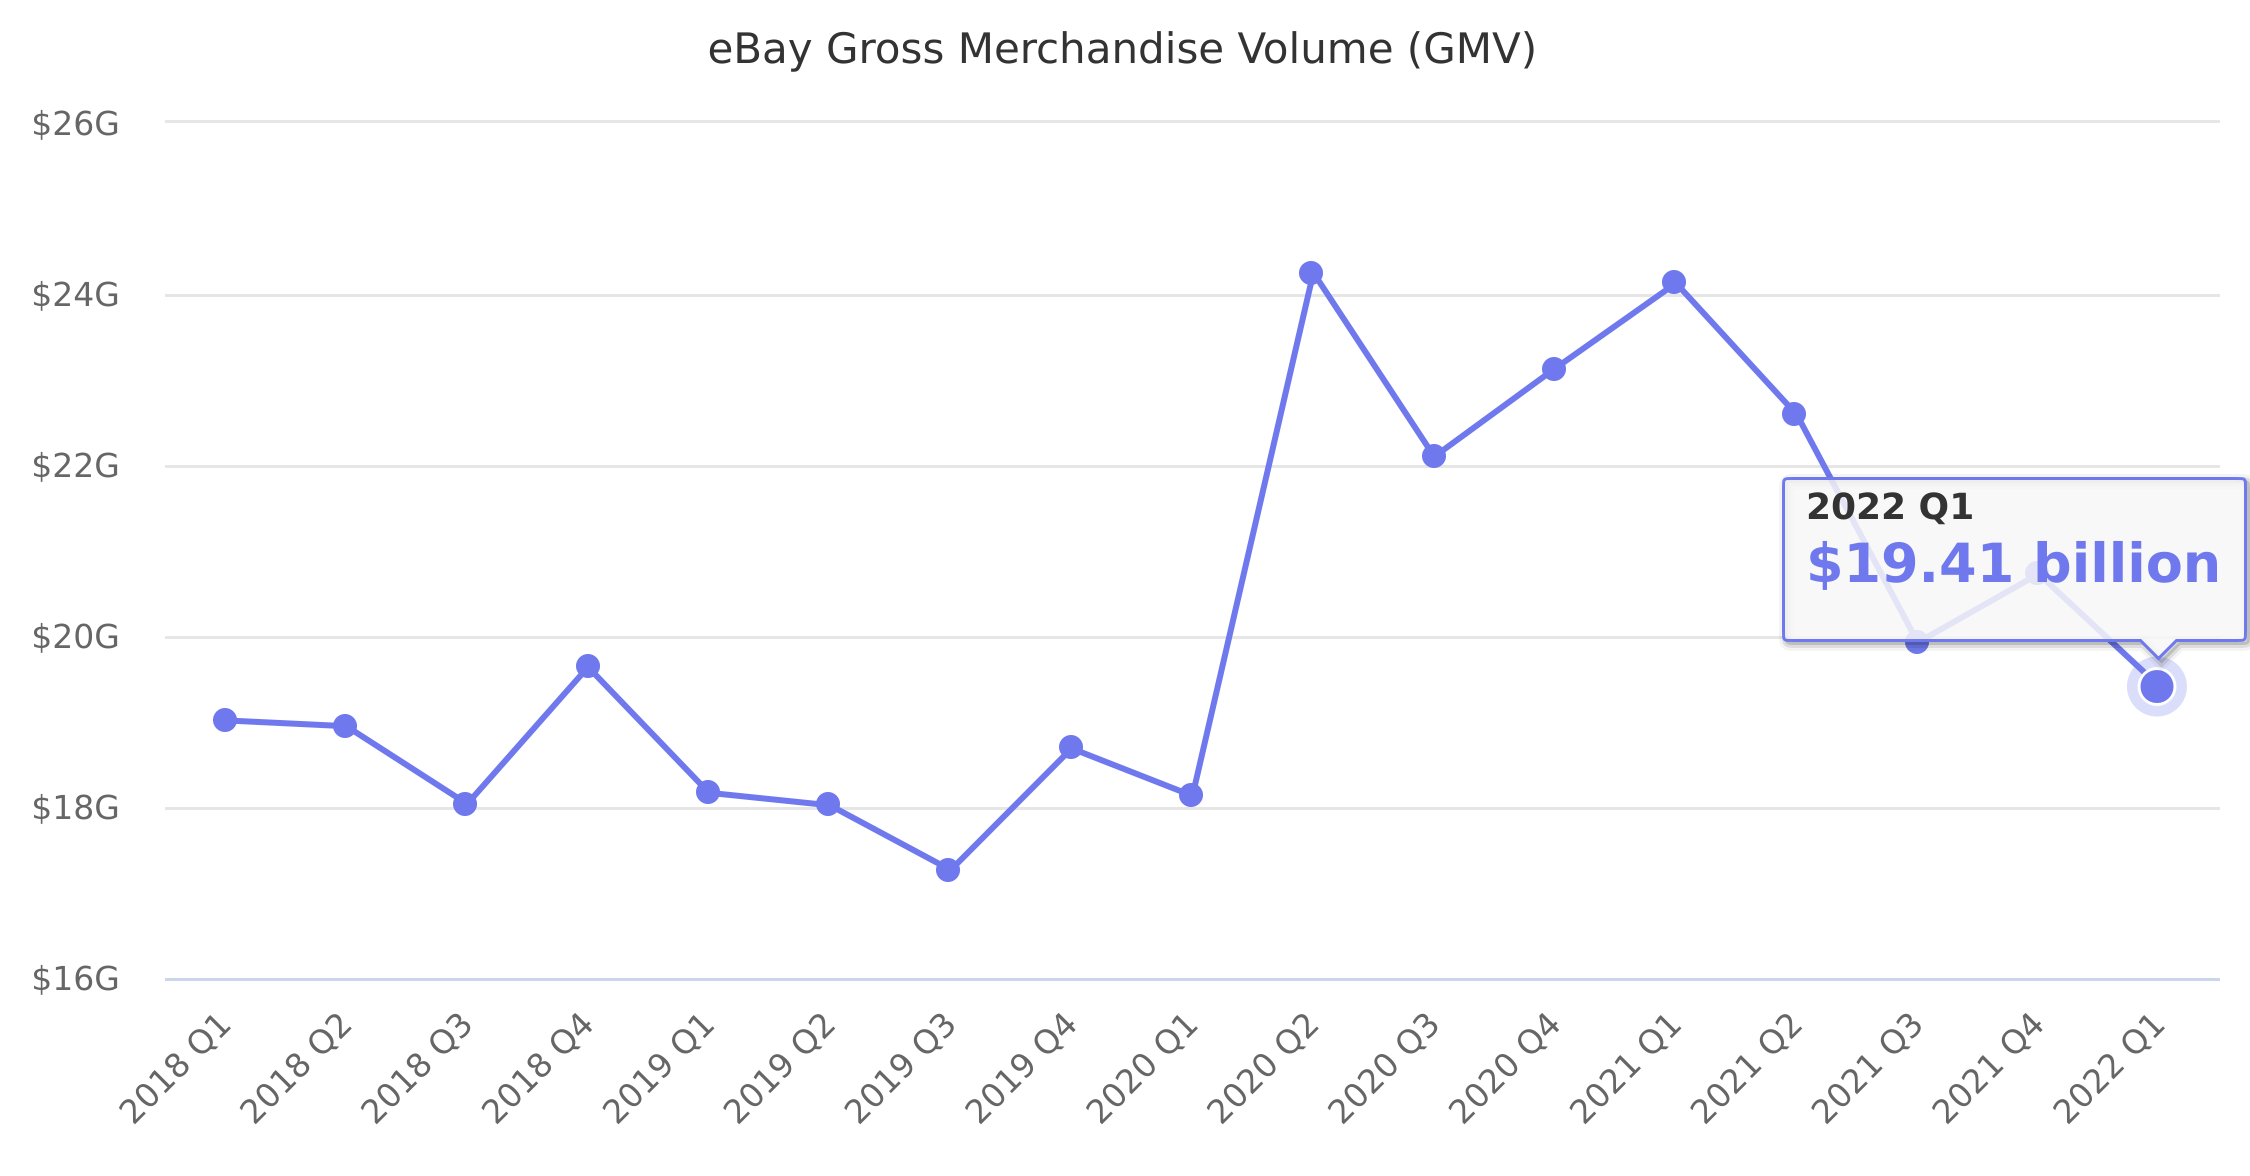 eBay Gross Merchandise Volume (GMV)